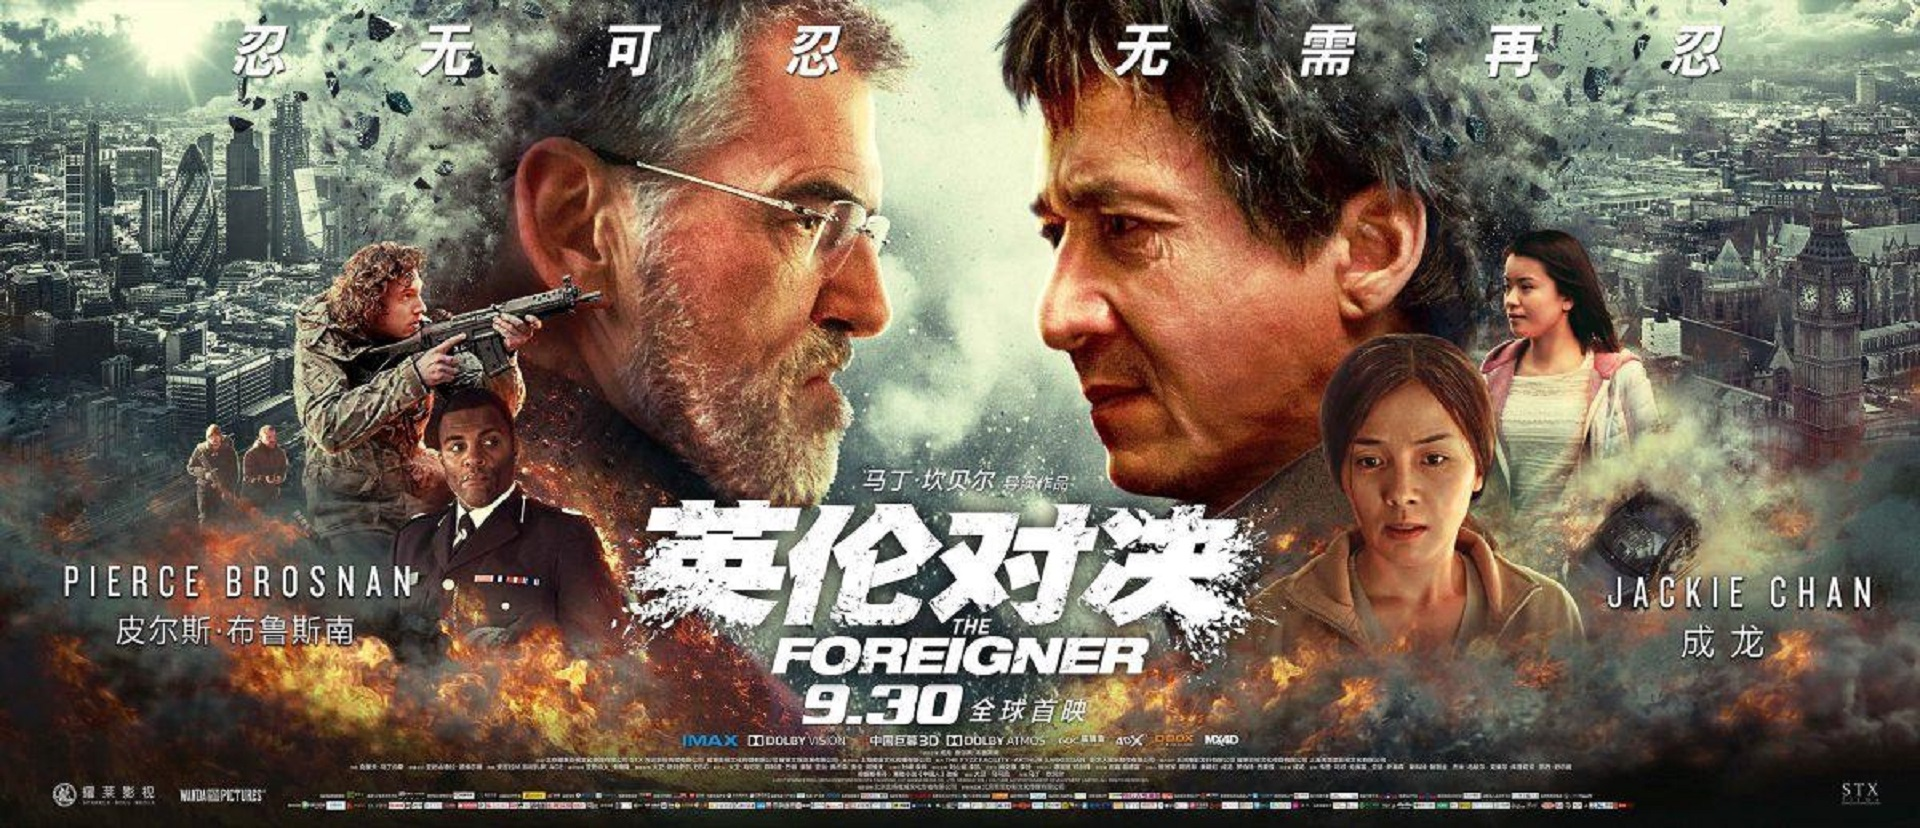 Background THE FOREIGNER